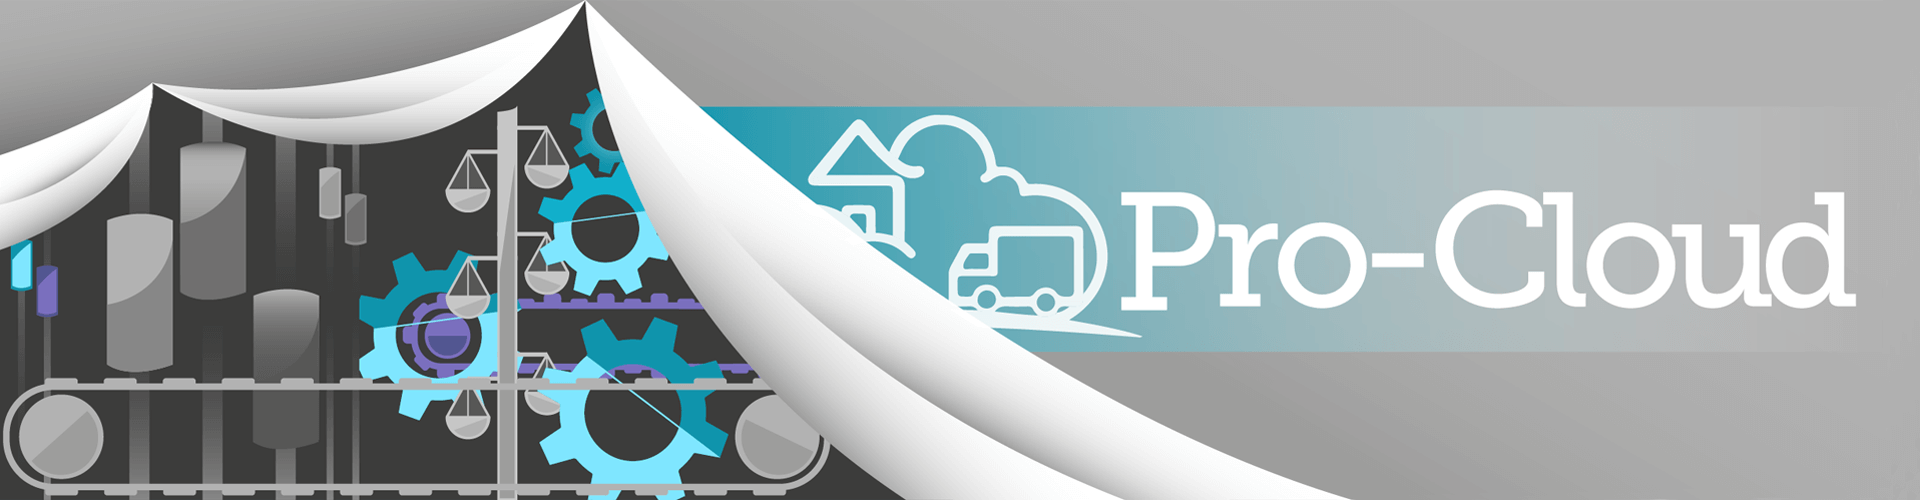 the pro-cloud logo revealing machinery behind a curtain